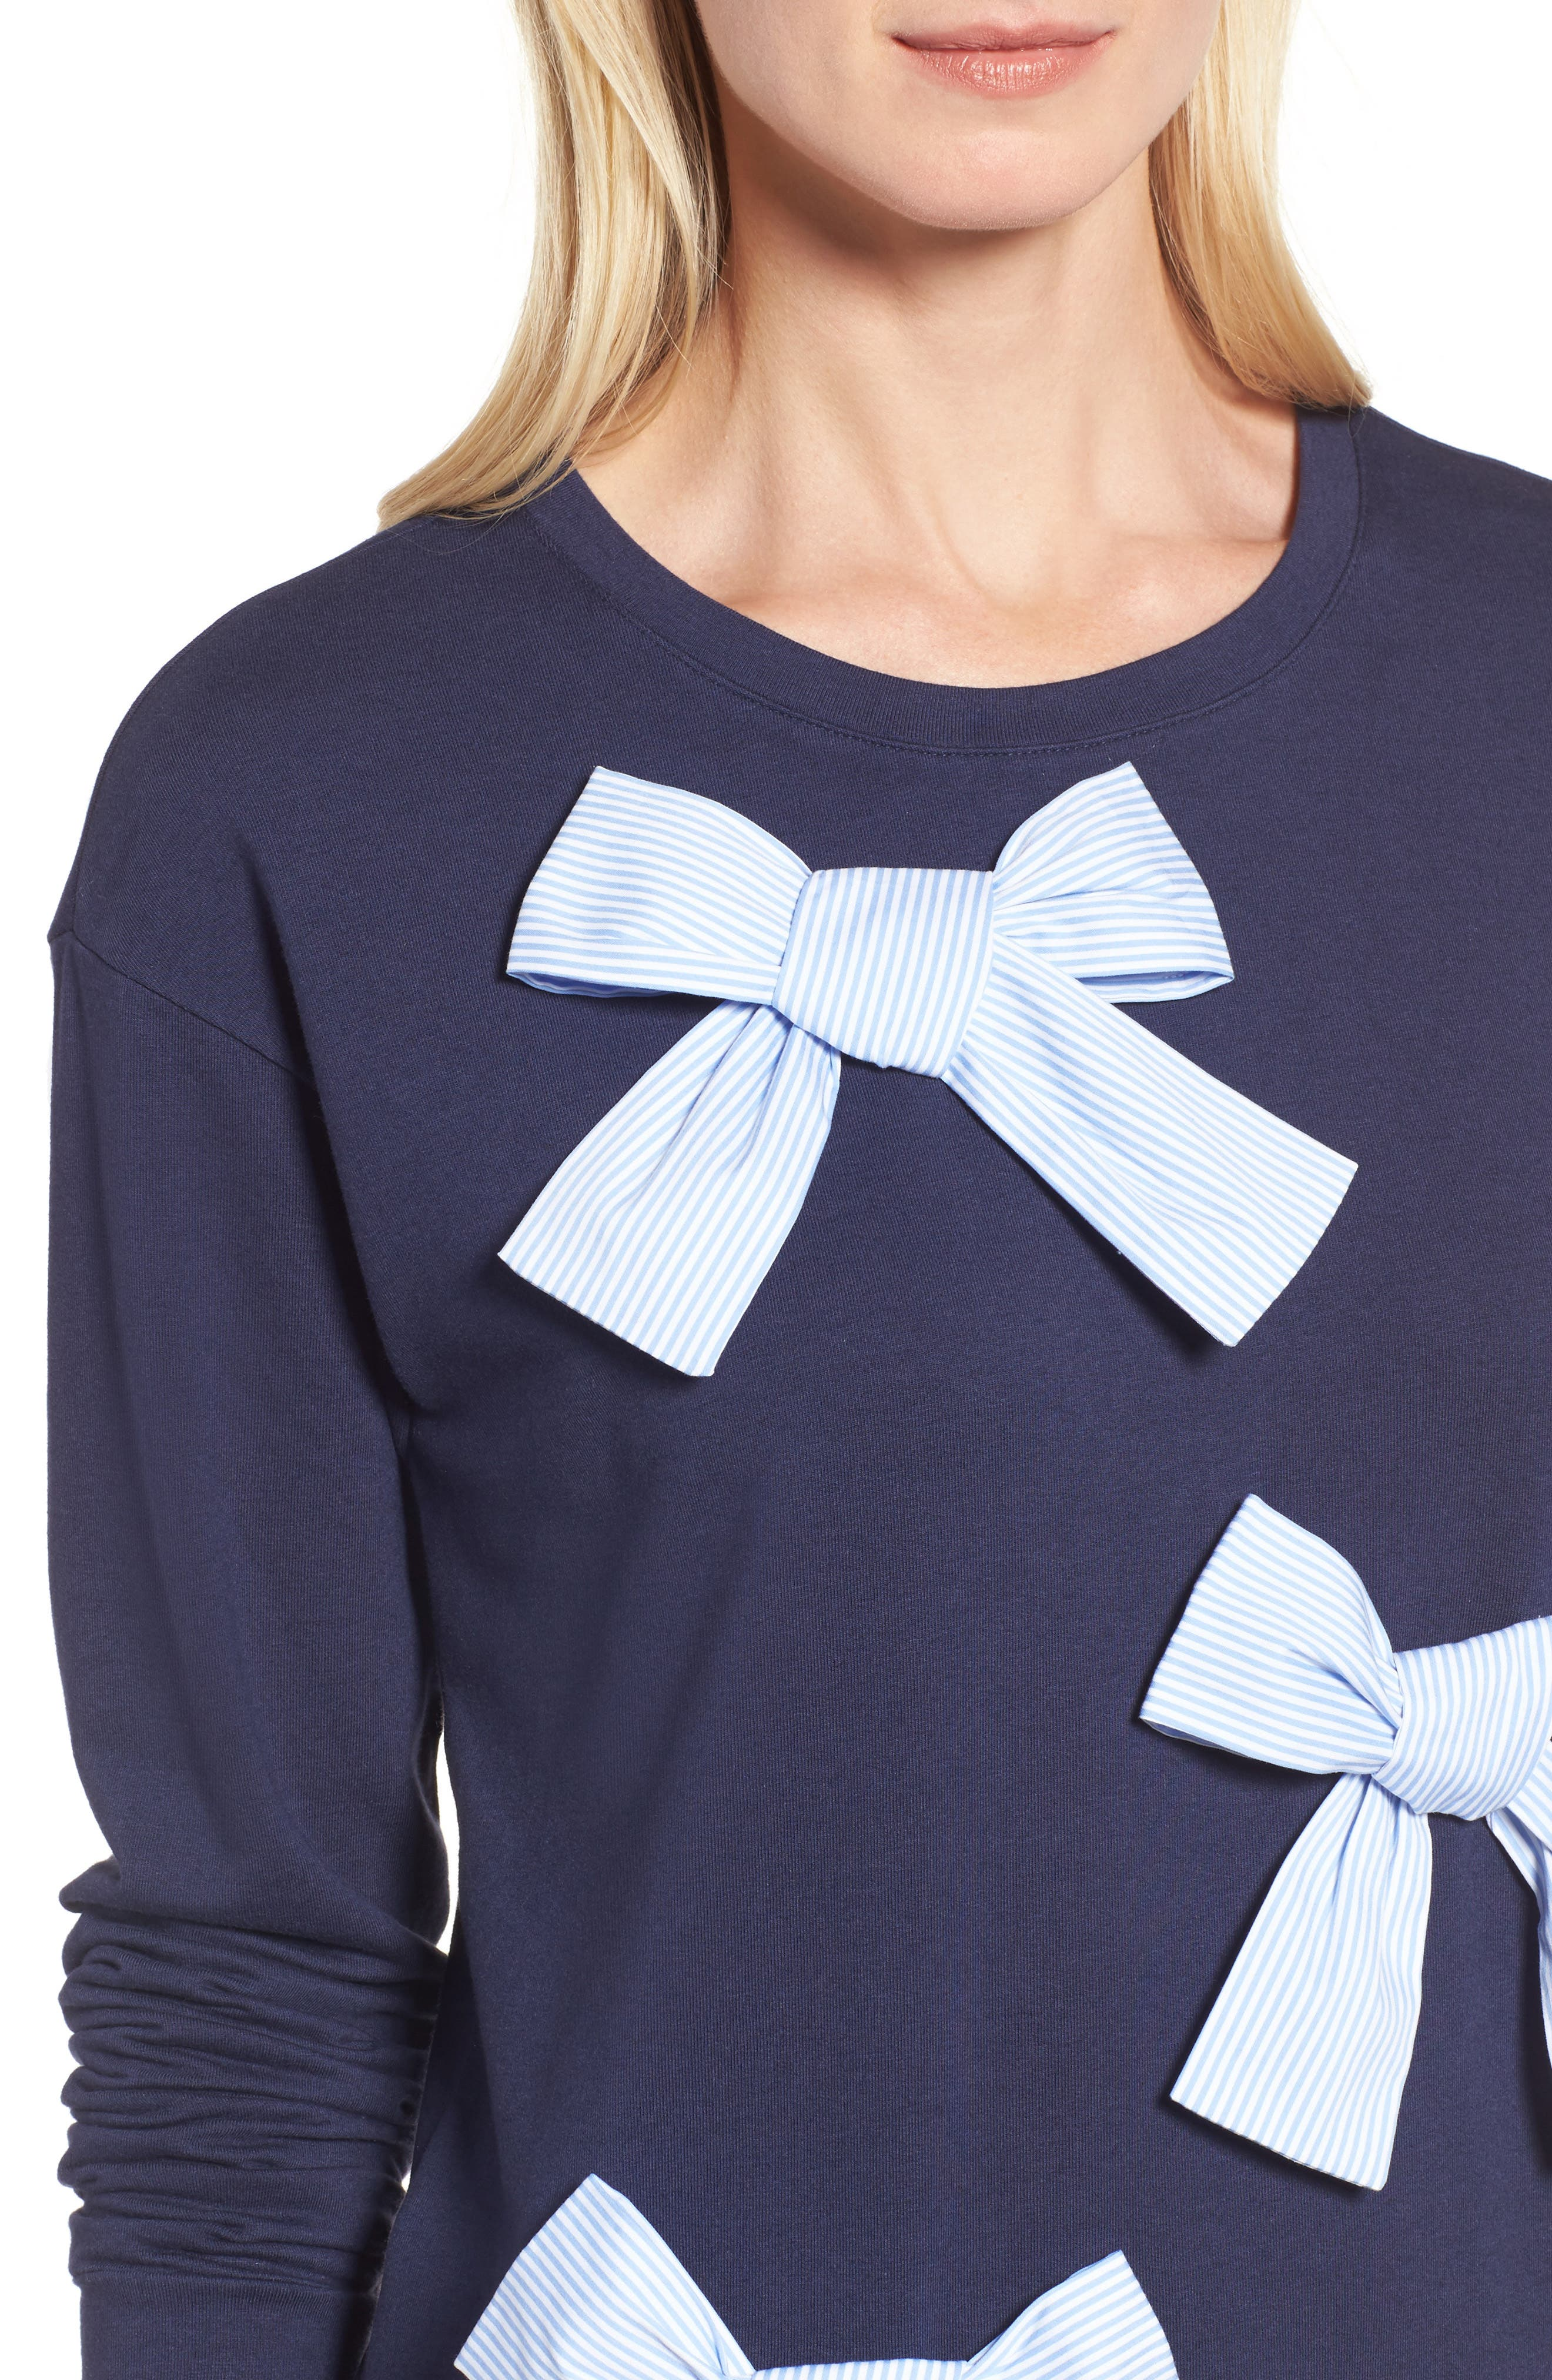 Bow Detail Sweatshirt,                             Alternate thumbnail 5, color,                             Navy Peacoat